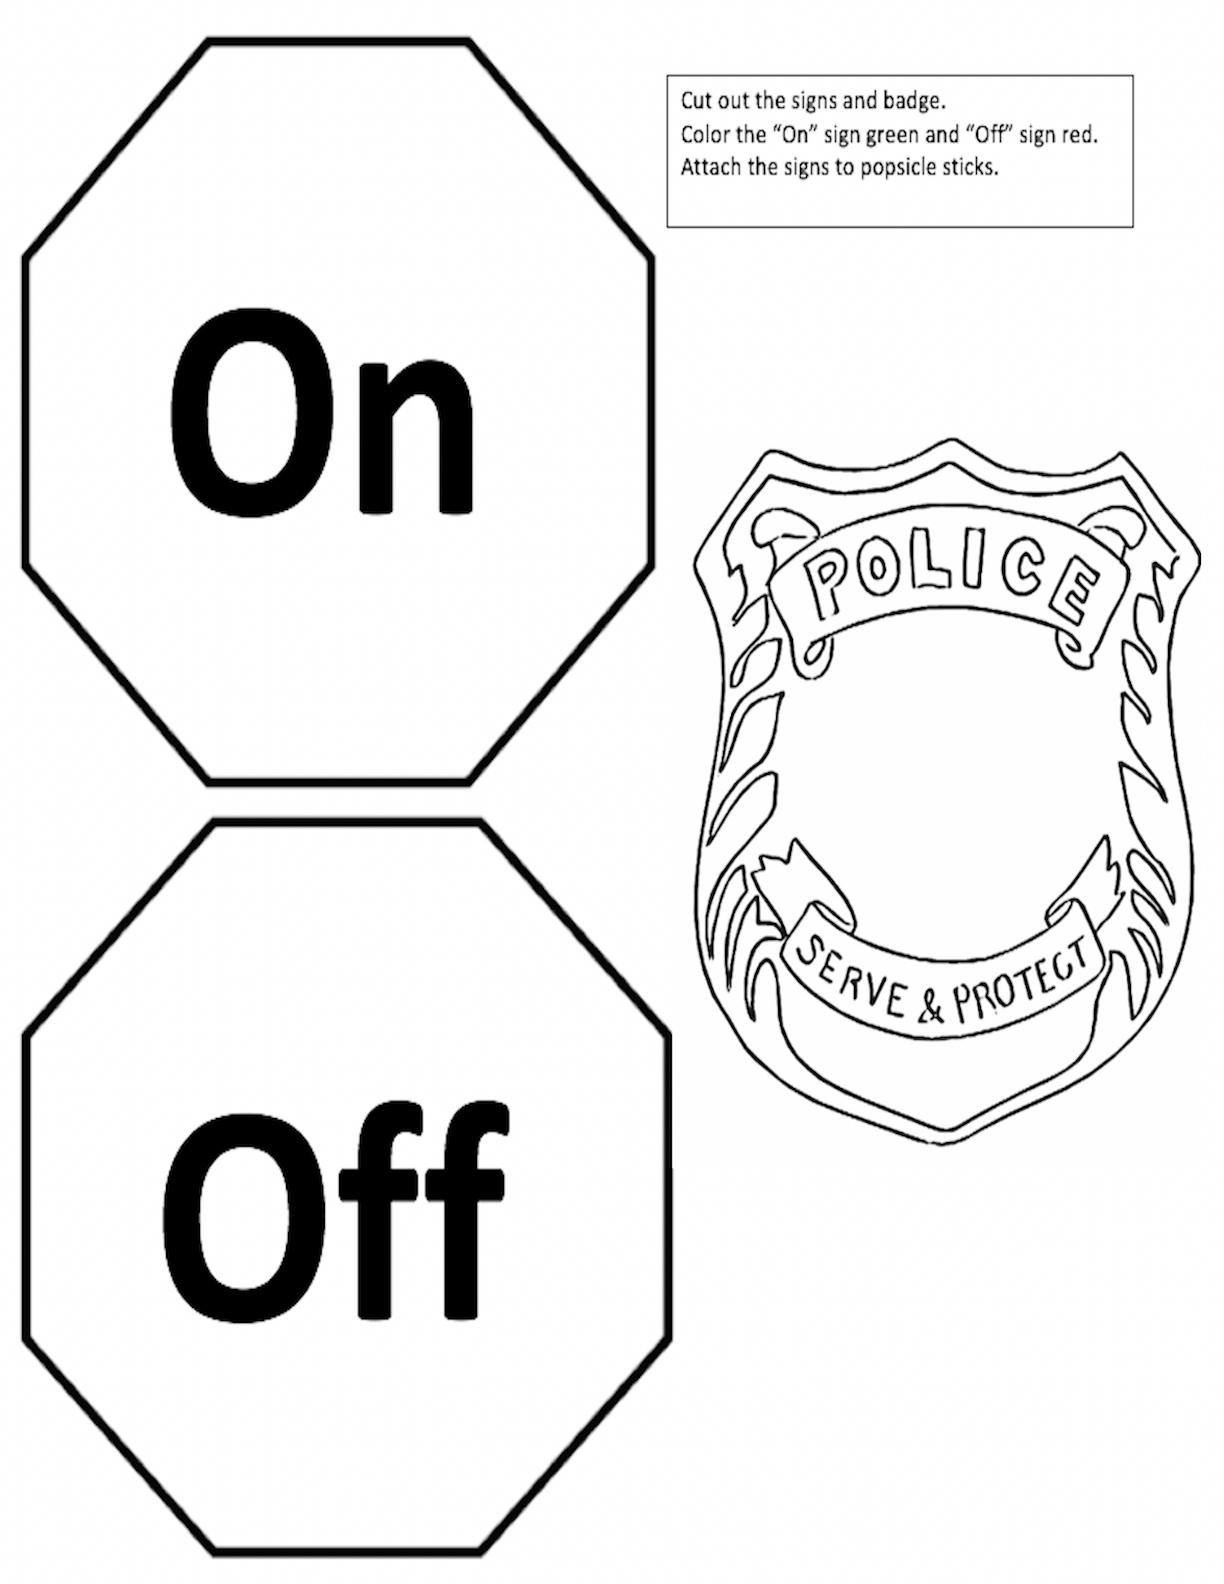 On and Off Signs and Badge Graphic